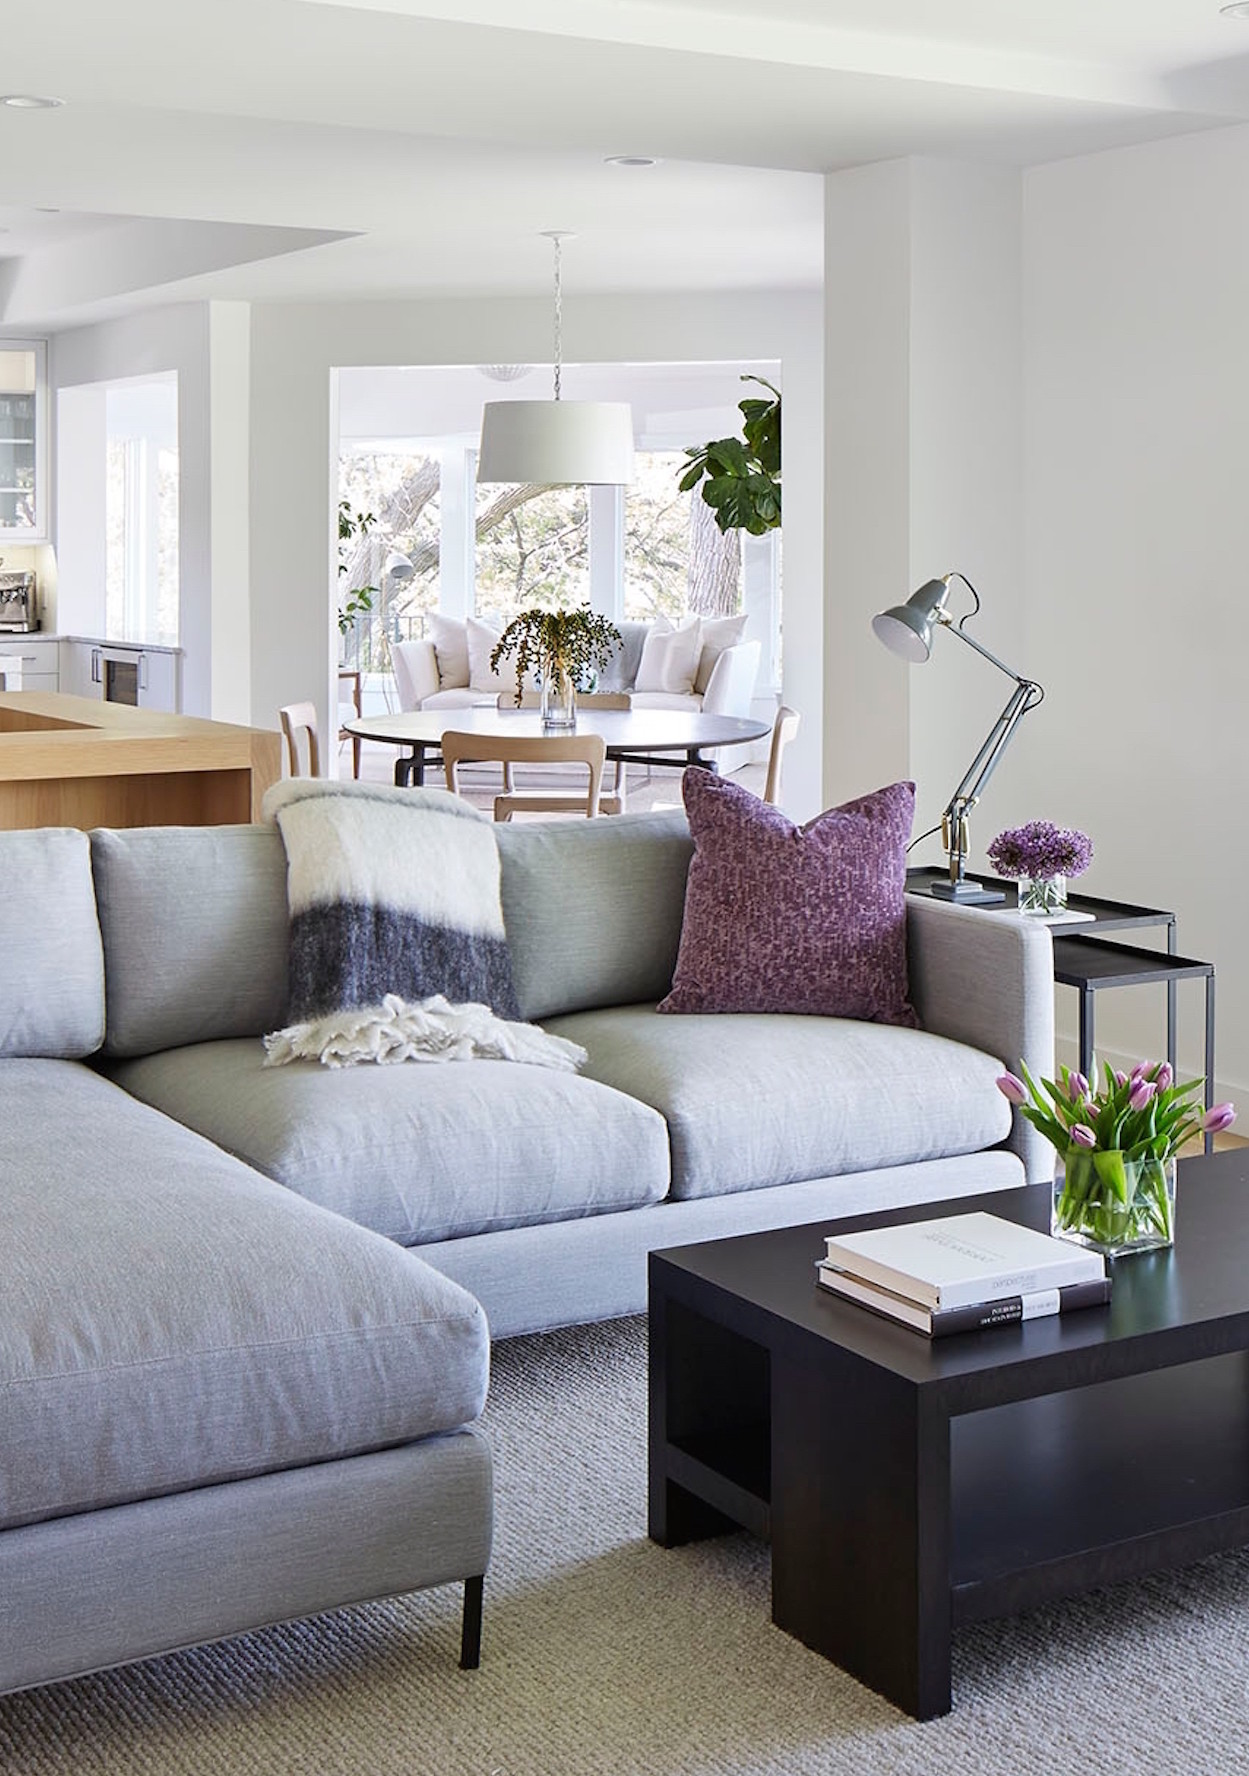 10 rules to keep in mind when decorating a living room martha stewart. Black Bedroom Furniture Sets. Home Design Ideas